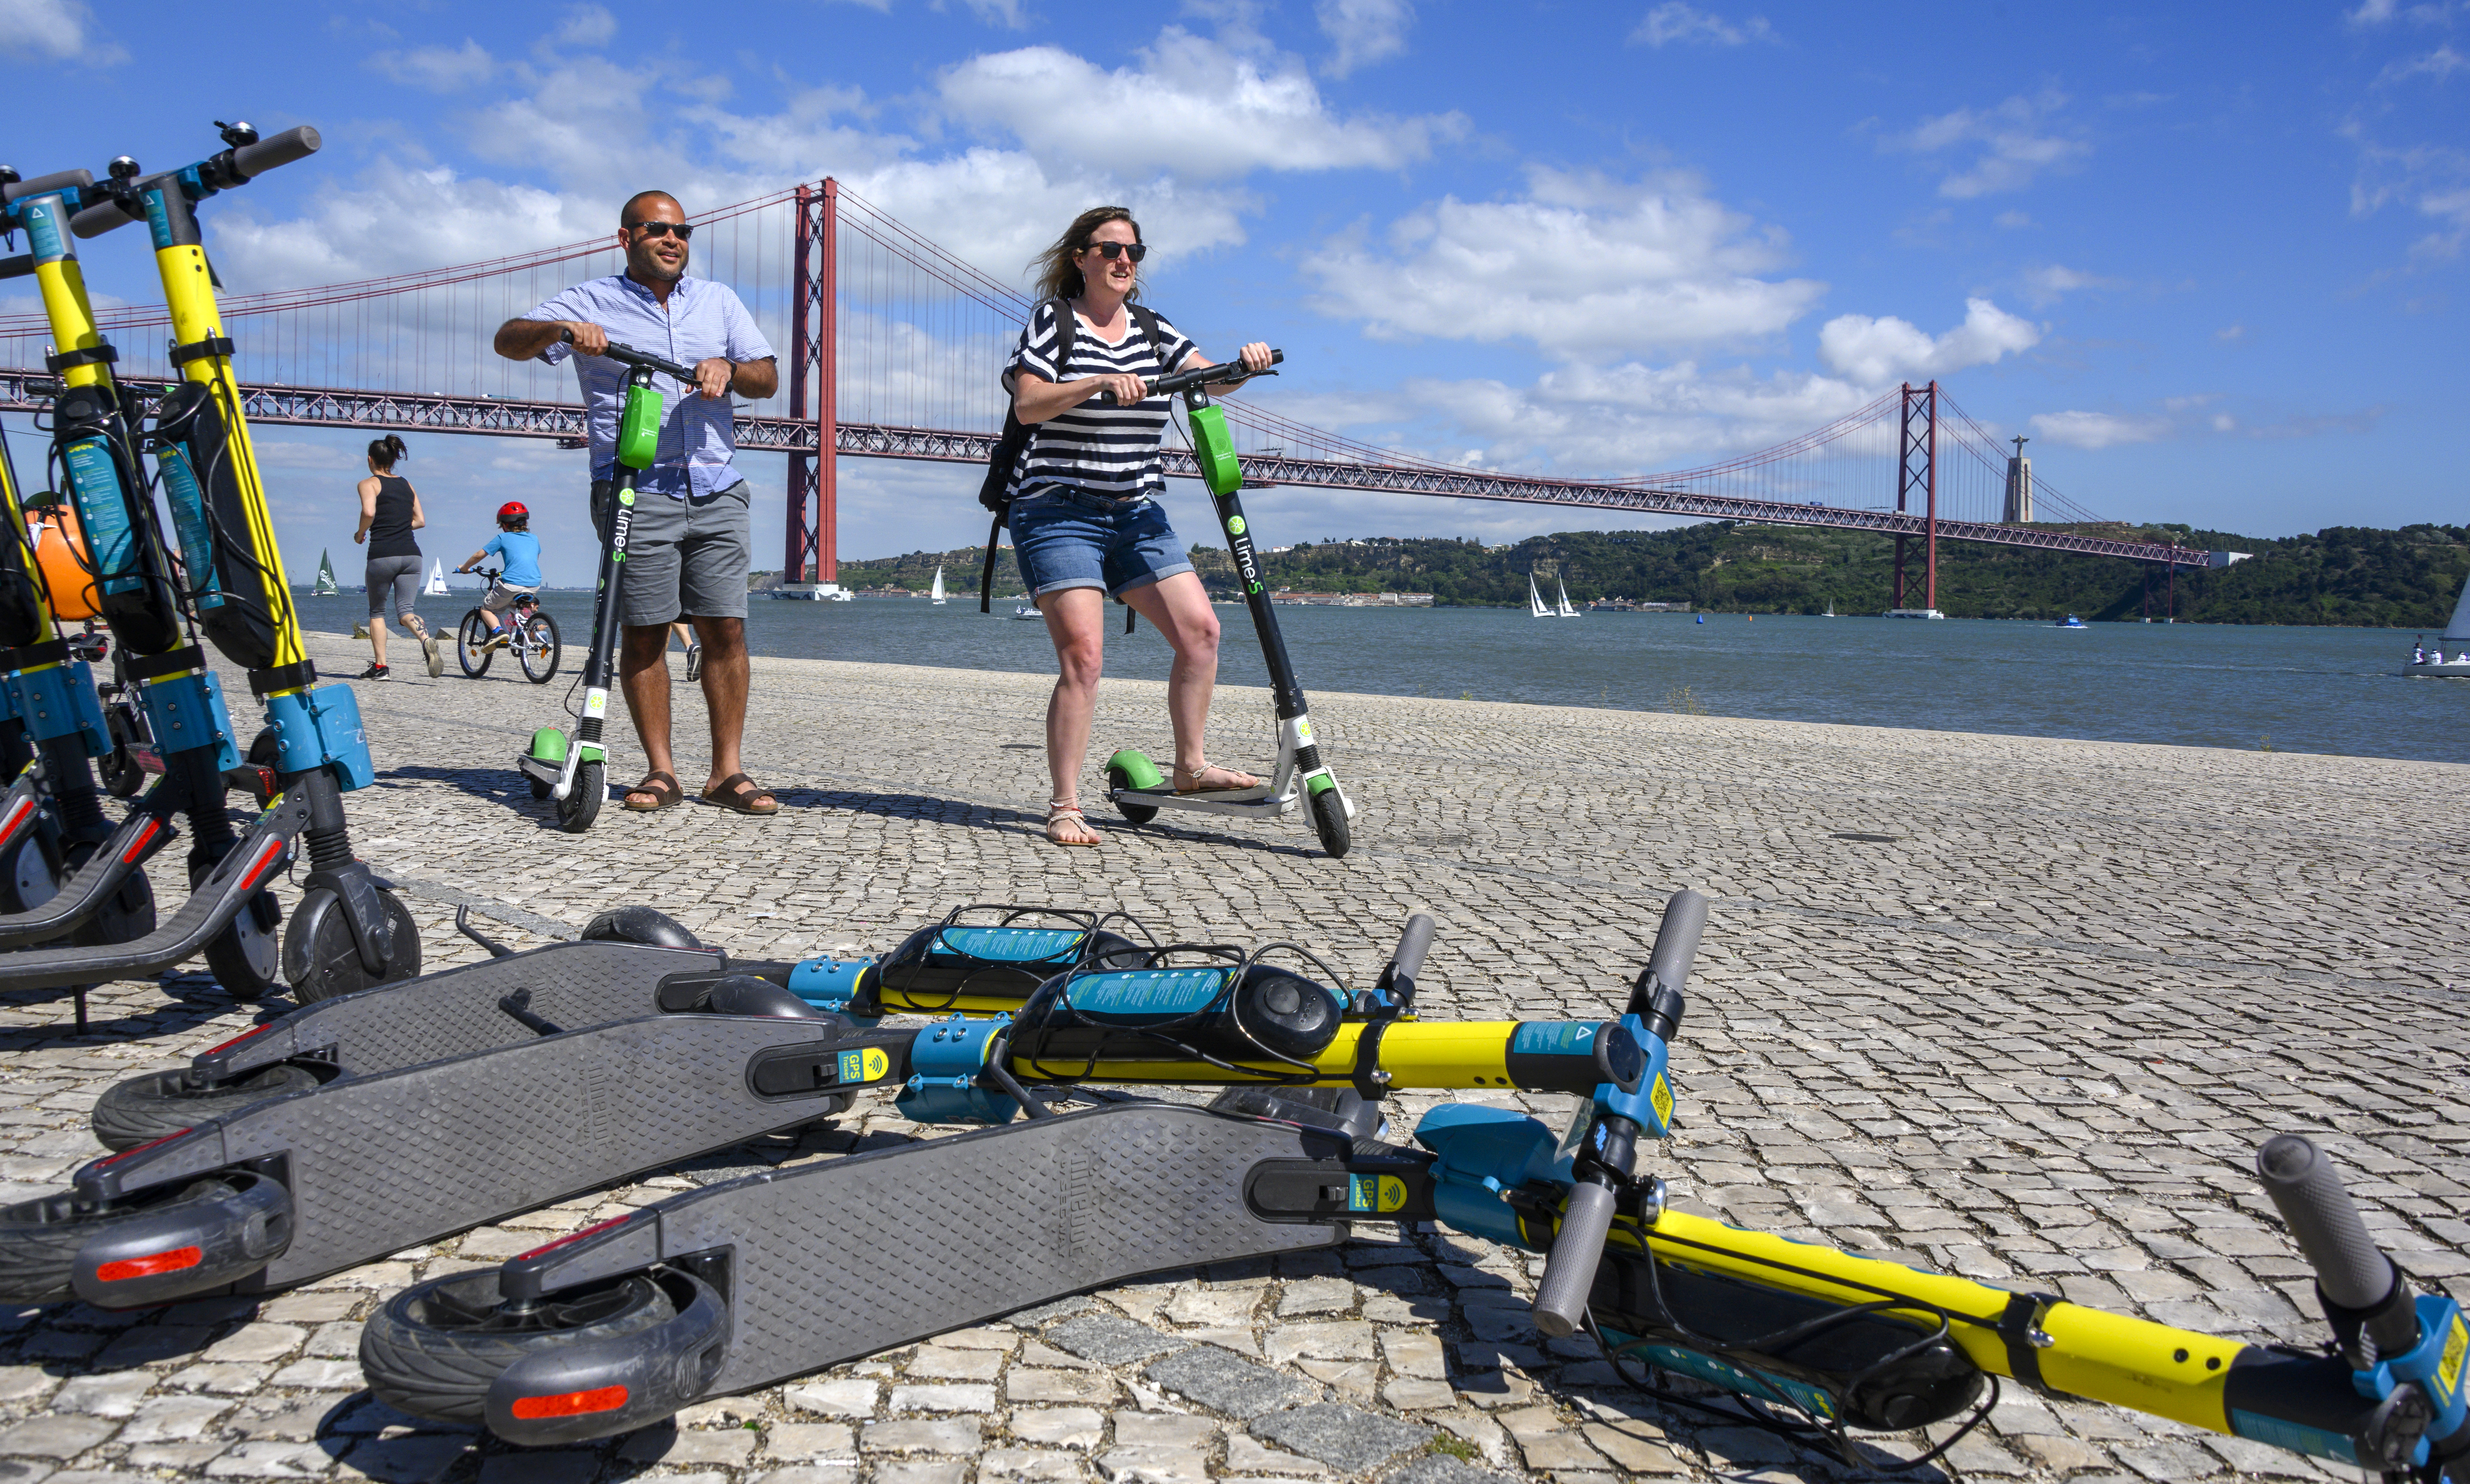 People using Lime e-scooters in Lisbon, Portugal.